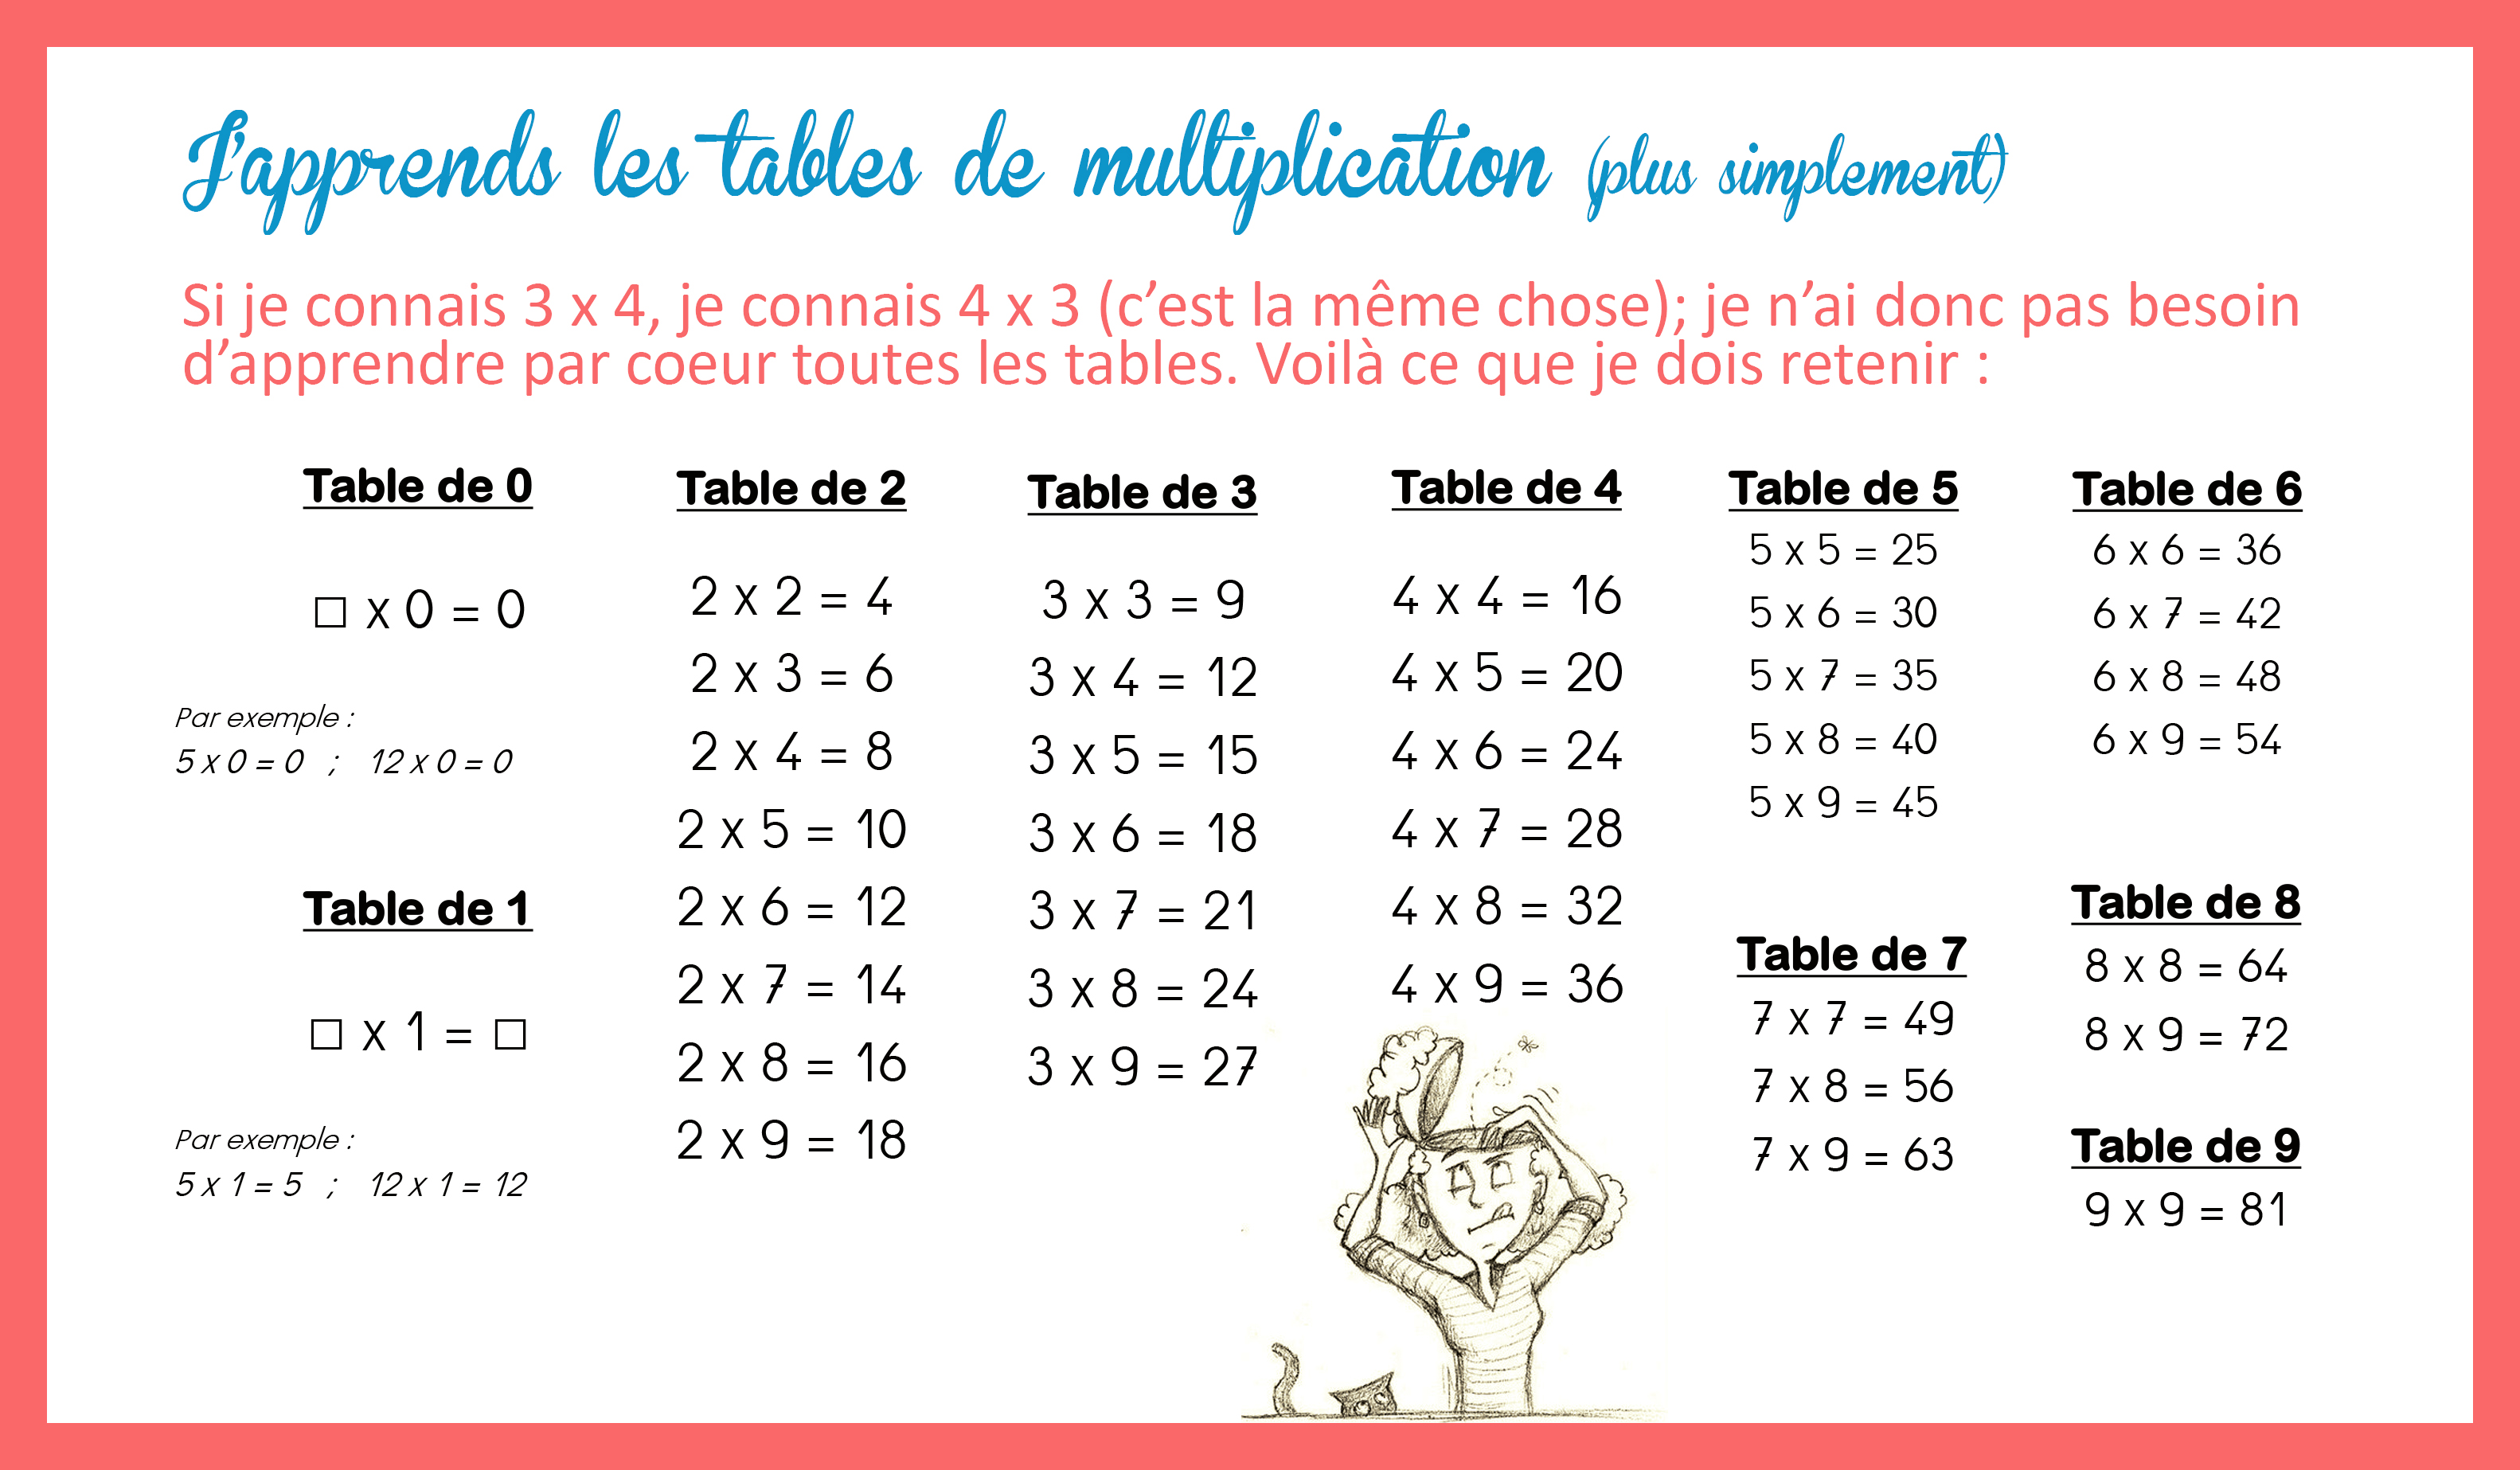 Table 6 Et 7 Tables De Multiplication Simplifiées